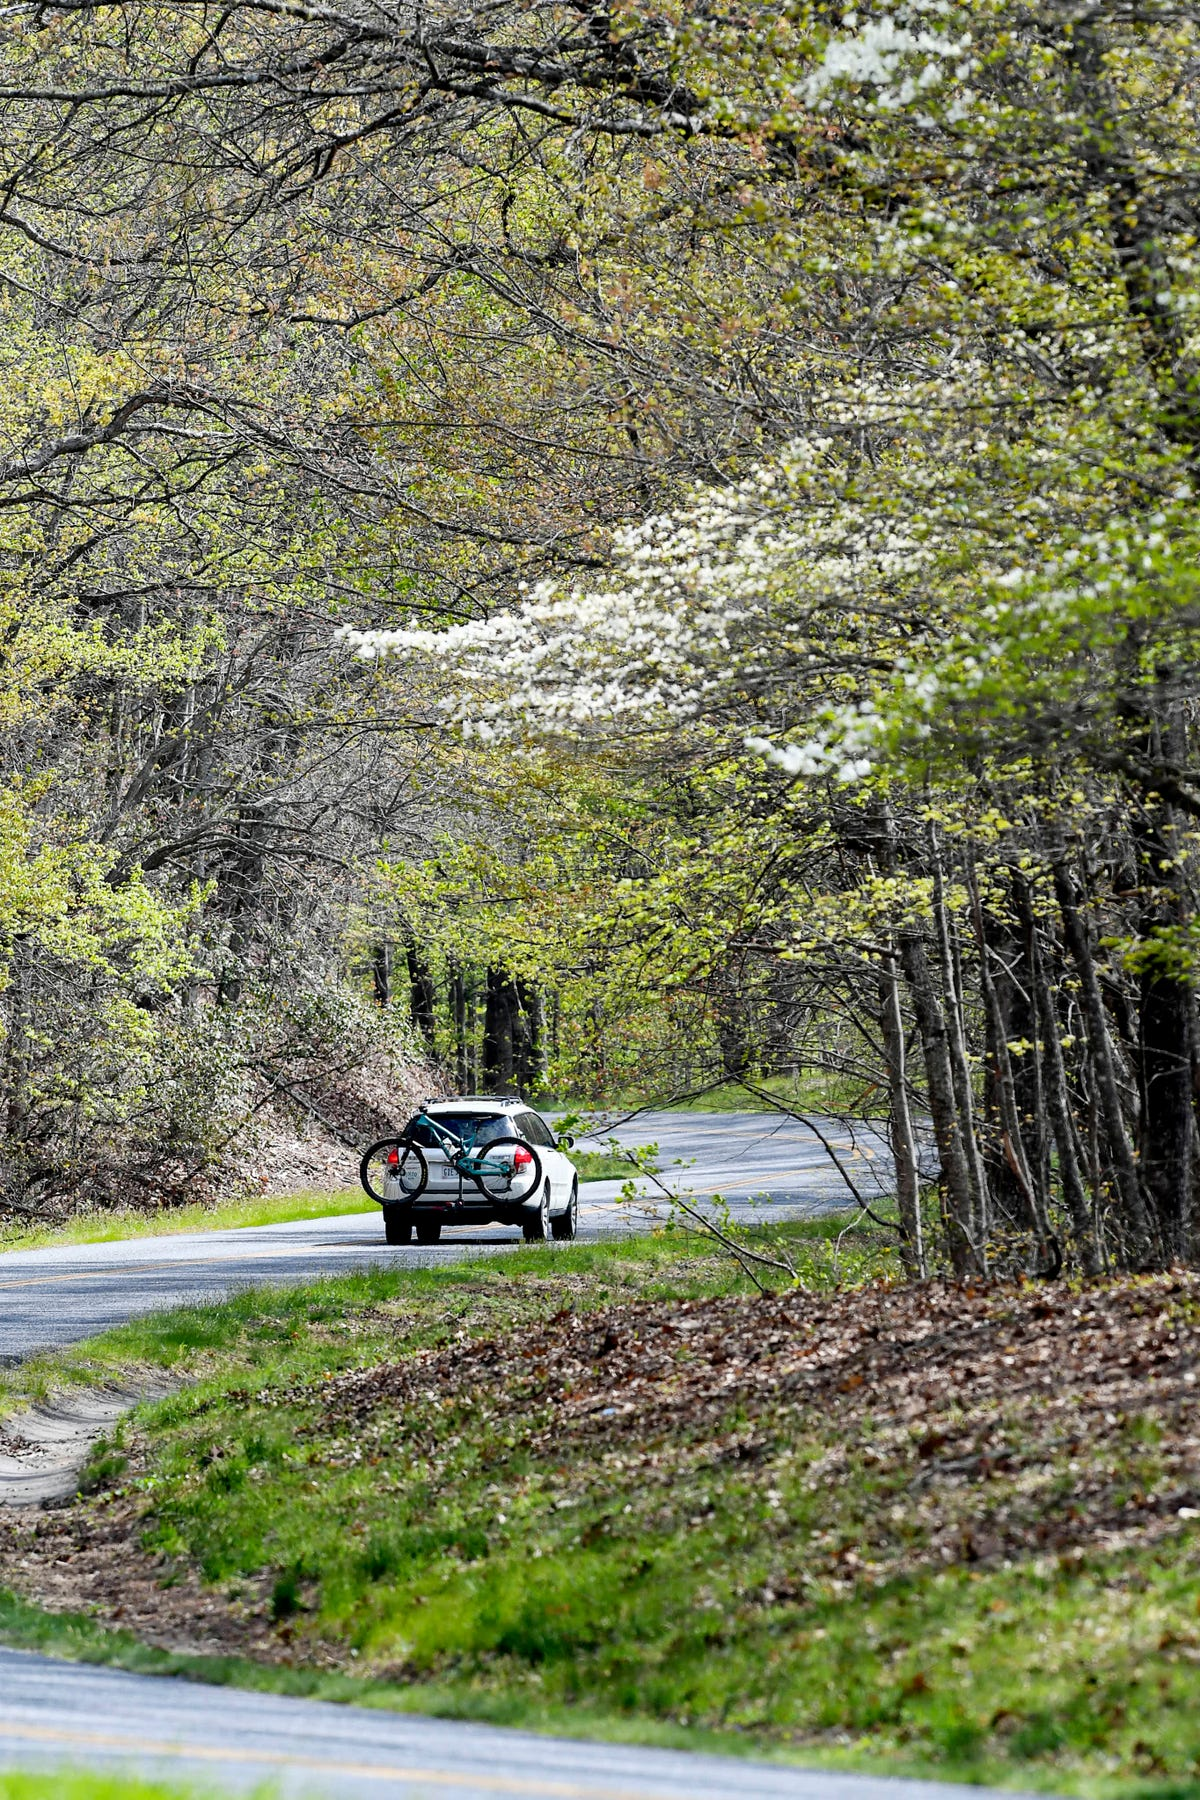 Third suicide in 2019 reported on Blue Ridge Parkway in